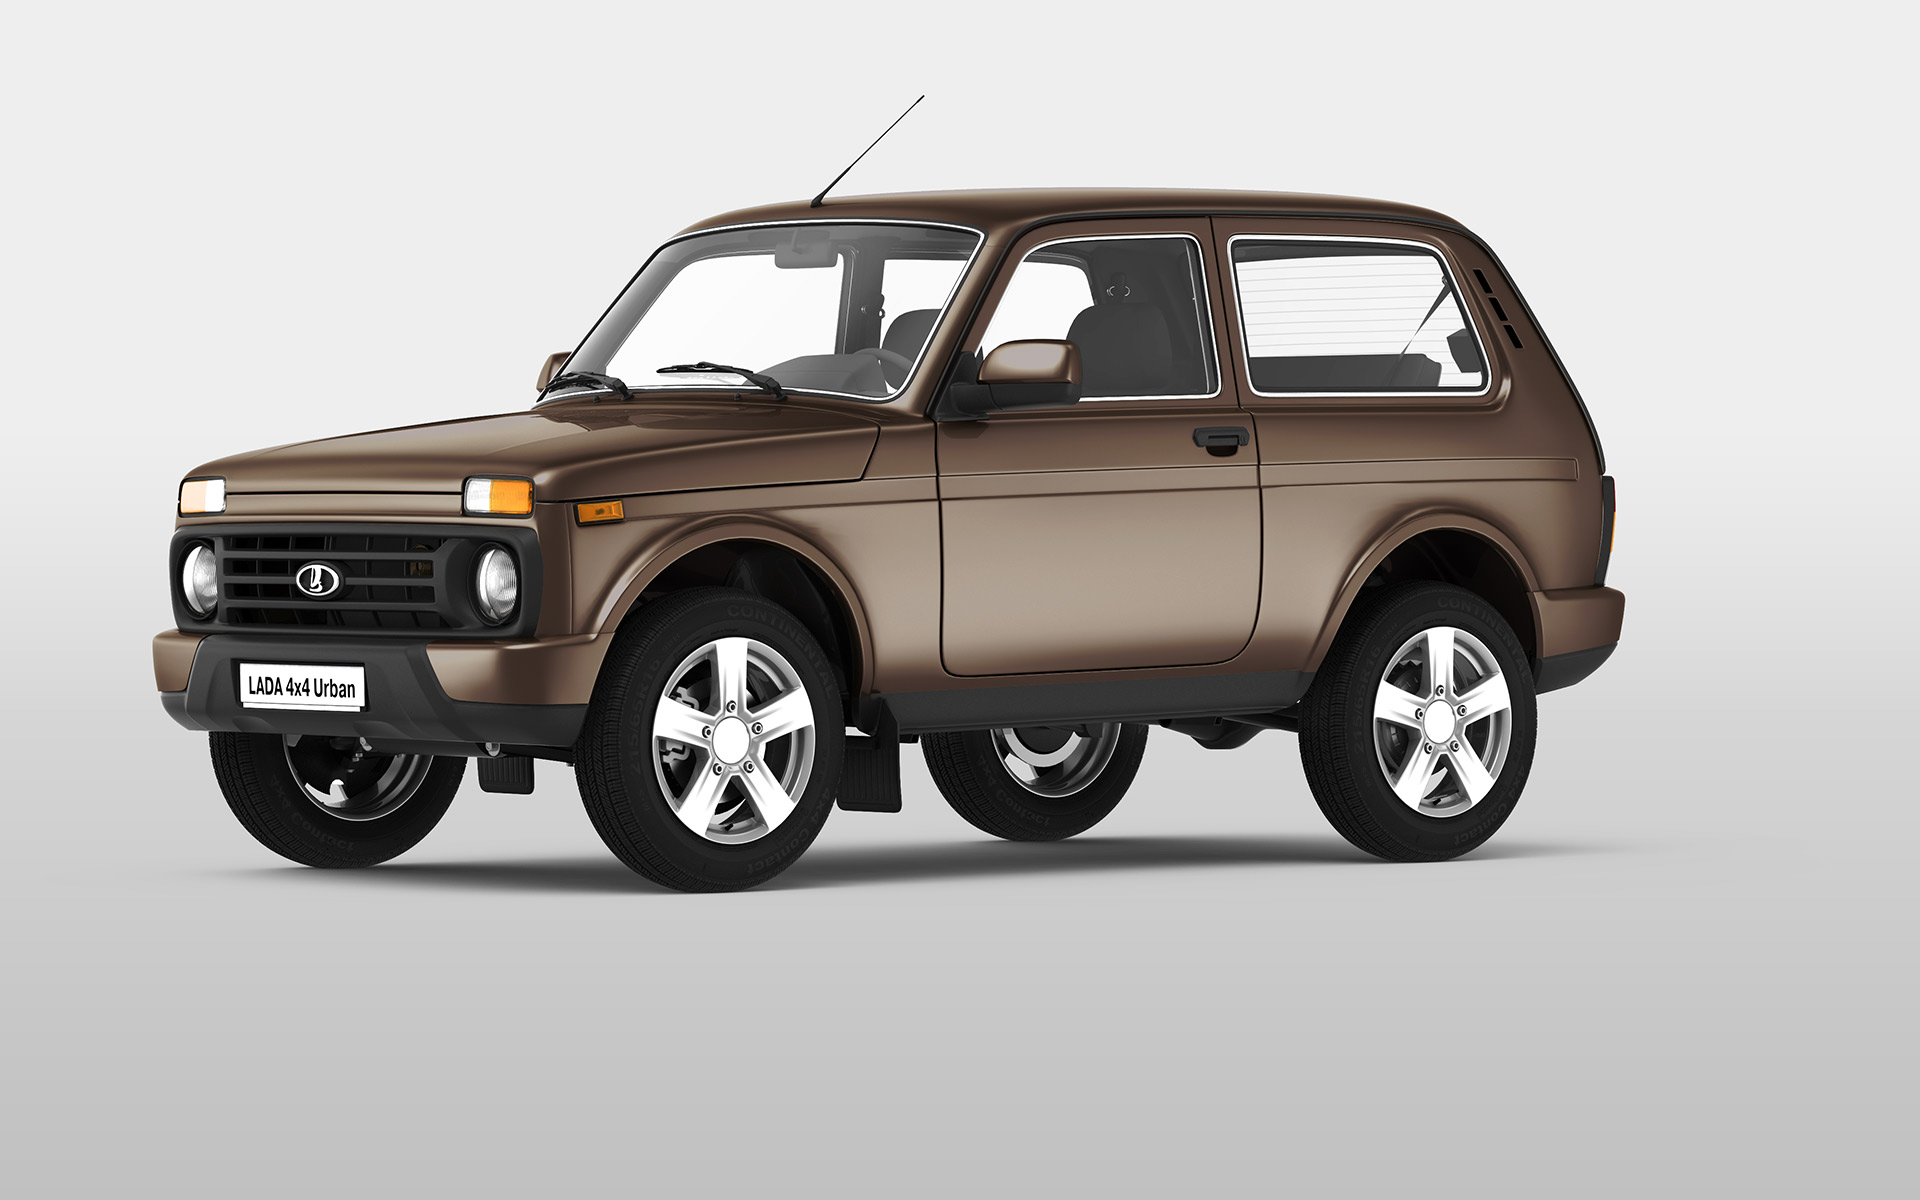 lada 4x4 urban review lada official website. Black Bedroom Furniture Sets. Home Design Ideas